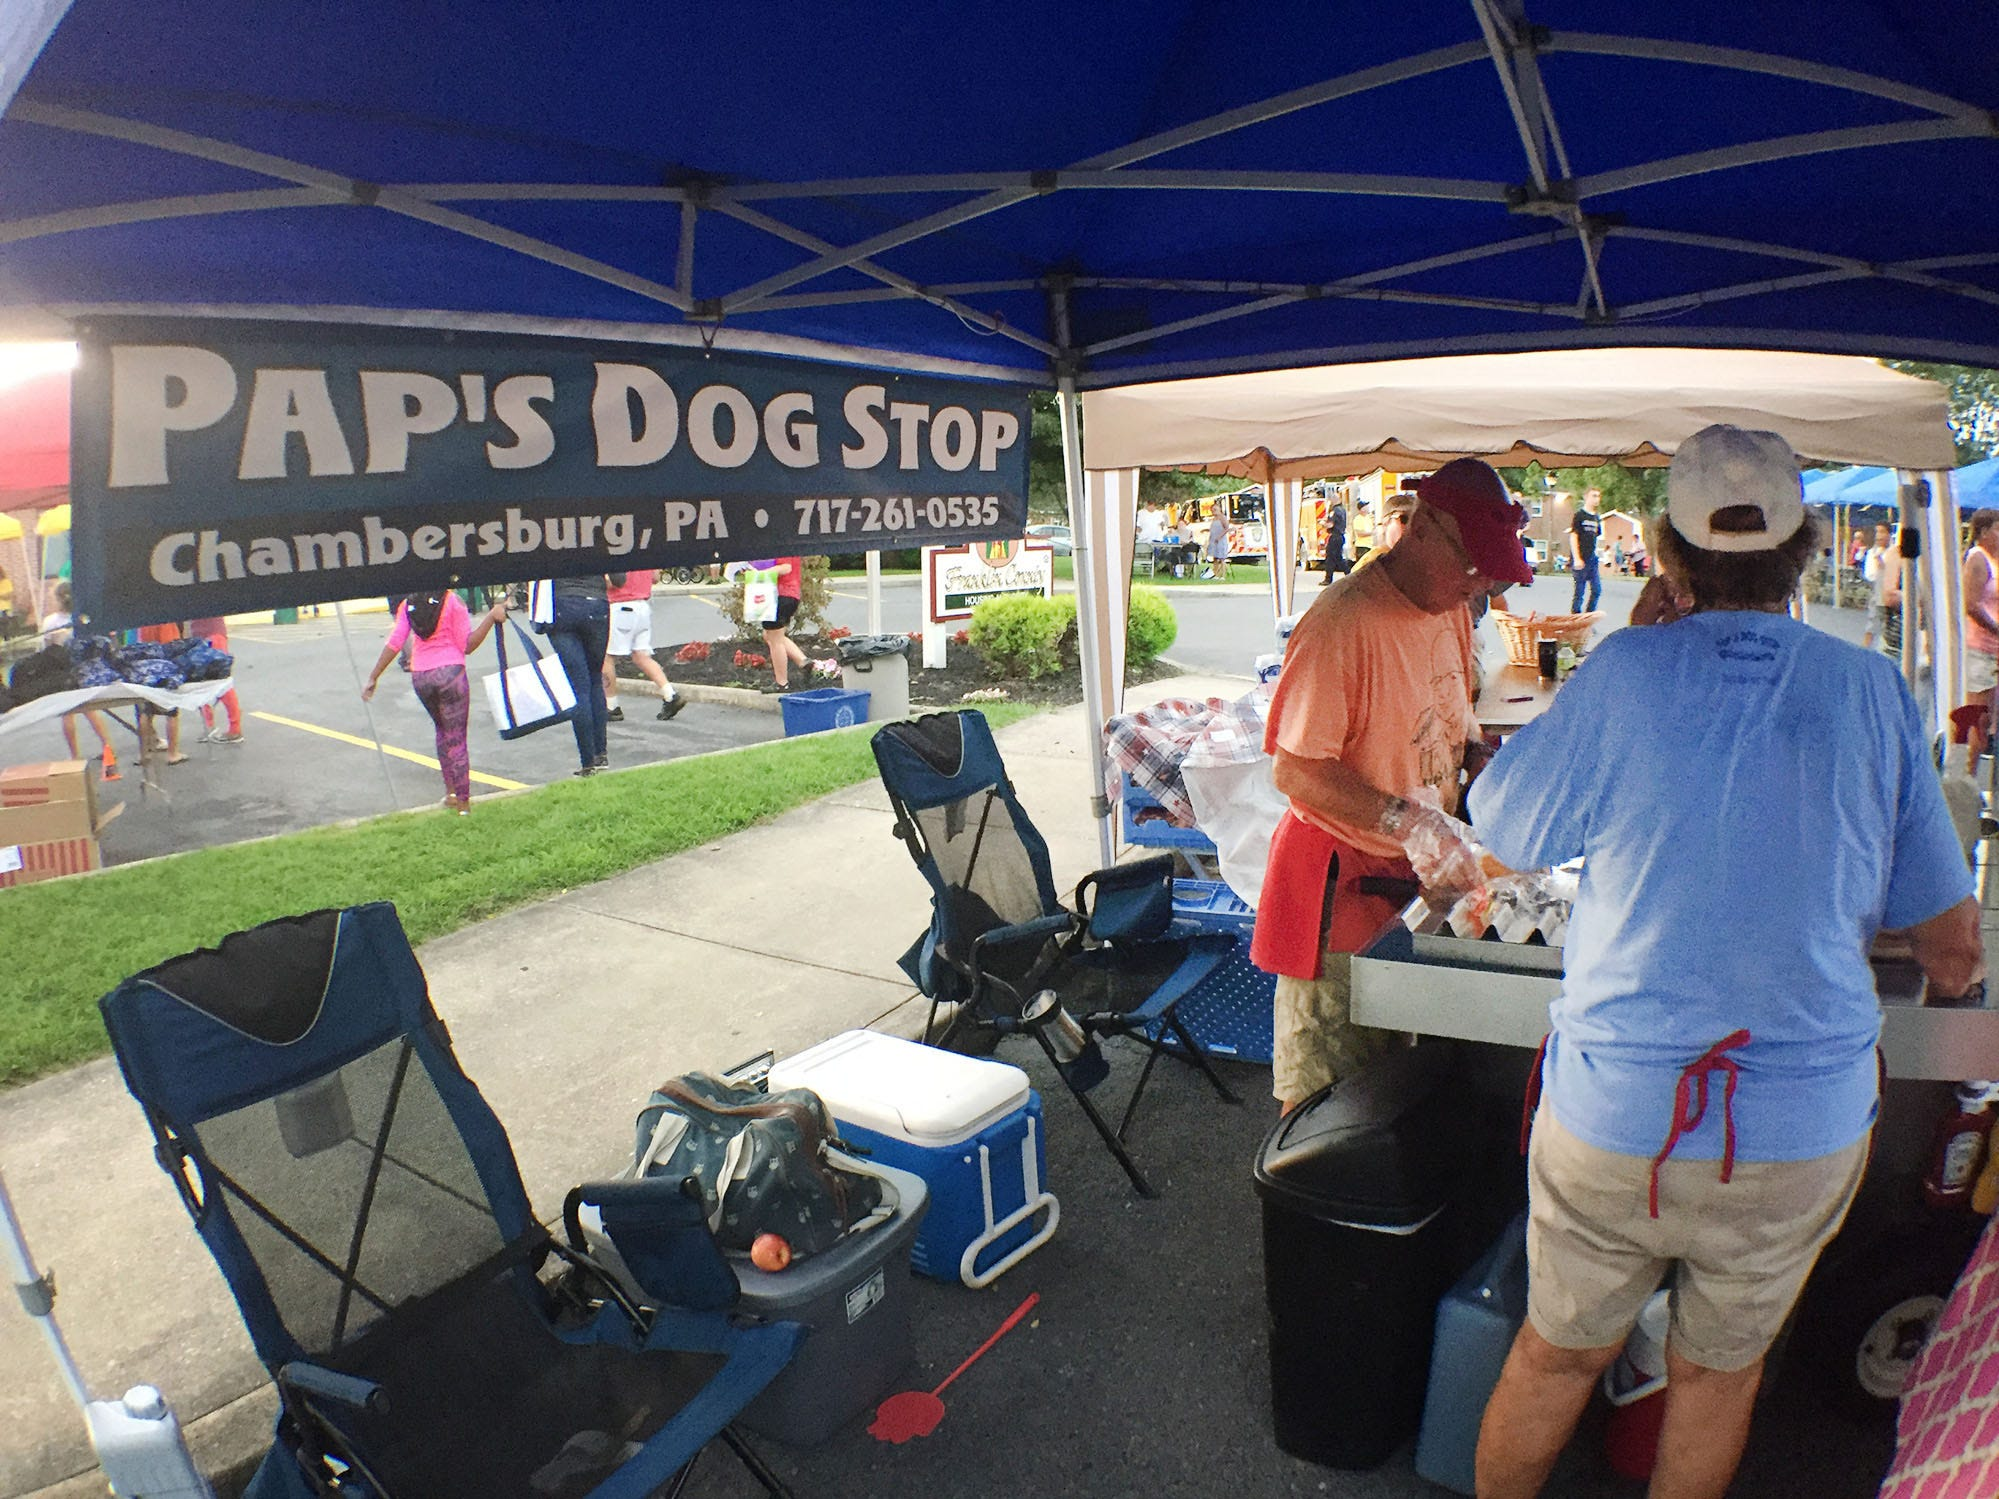 Pap's Dog Stop serves up free hot dogs. Chambersburg Police Department National Night Out was held Tuesday, August 7, 2018 at the Franklin County Housing Authority complex. The annual event is designed to have community members get a chance to meet first responders.